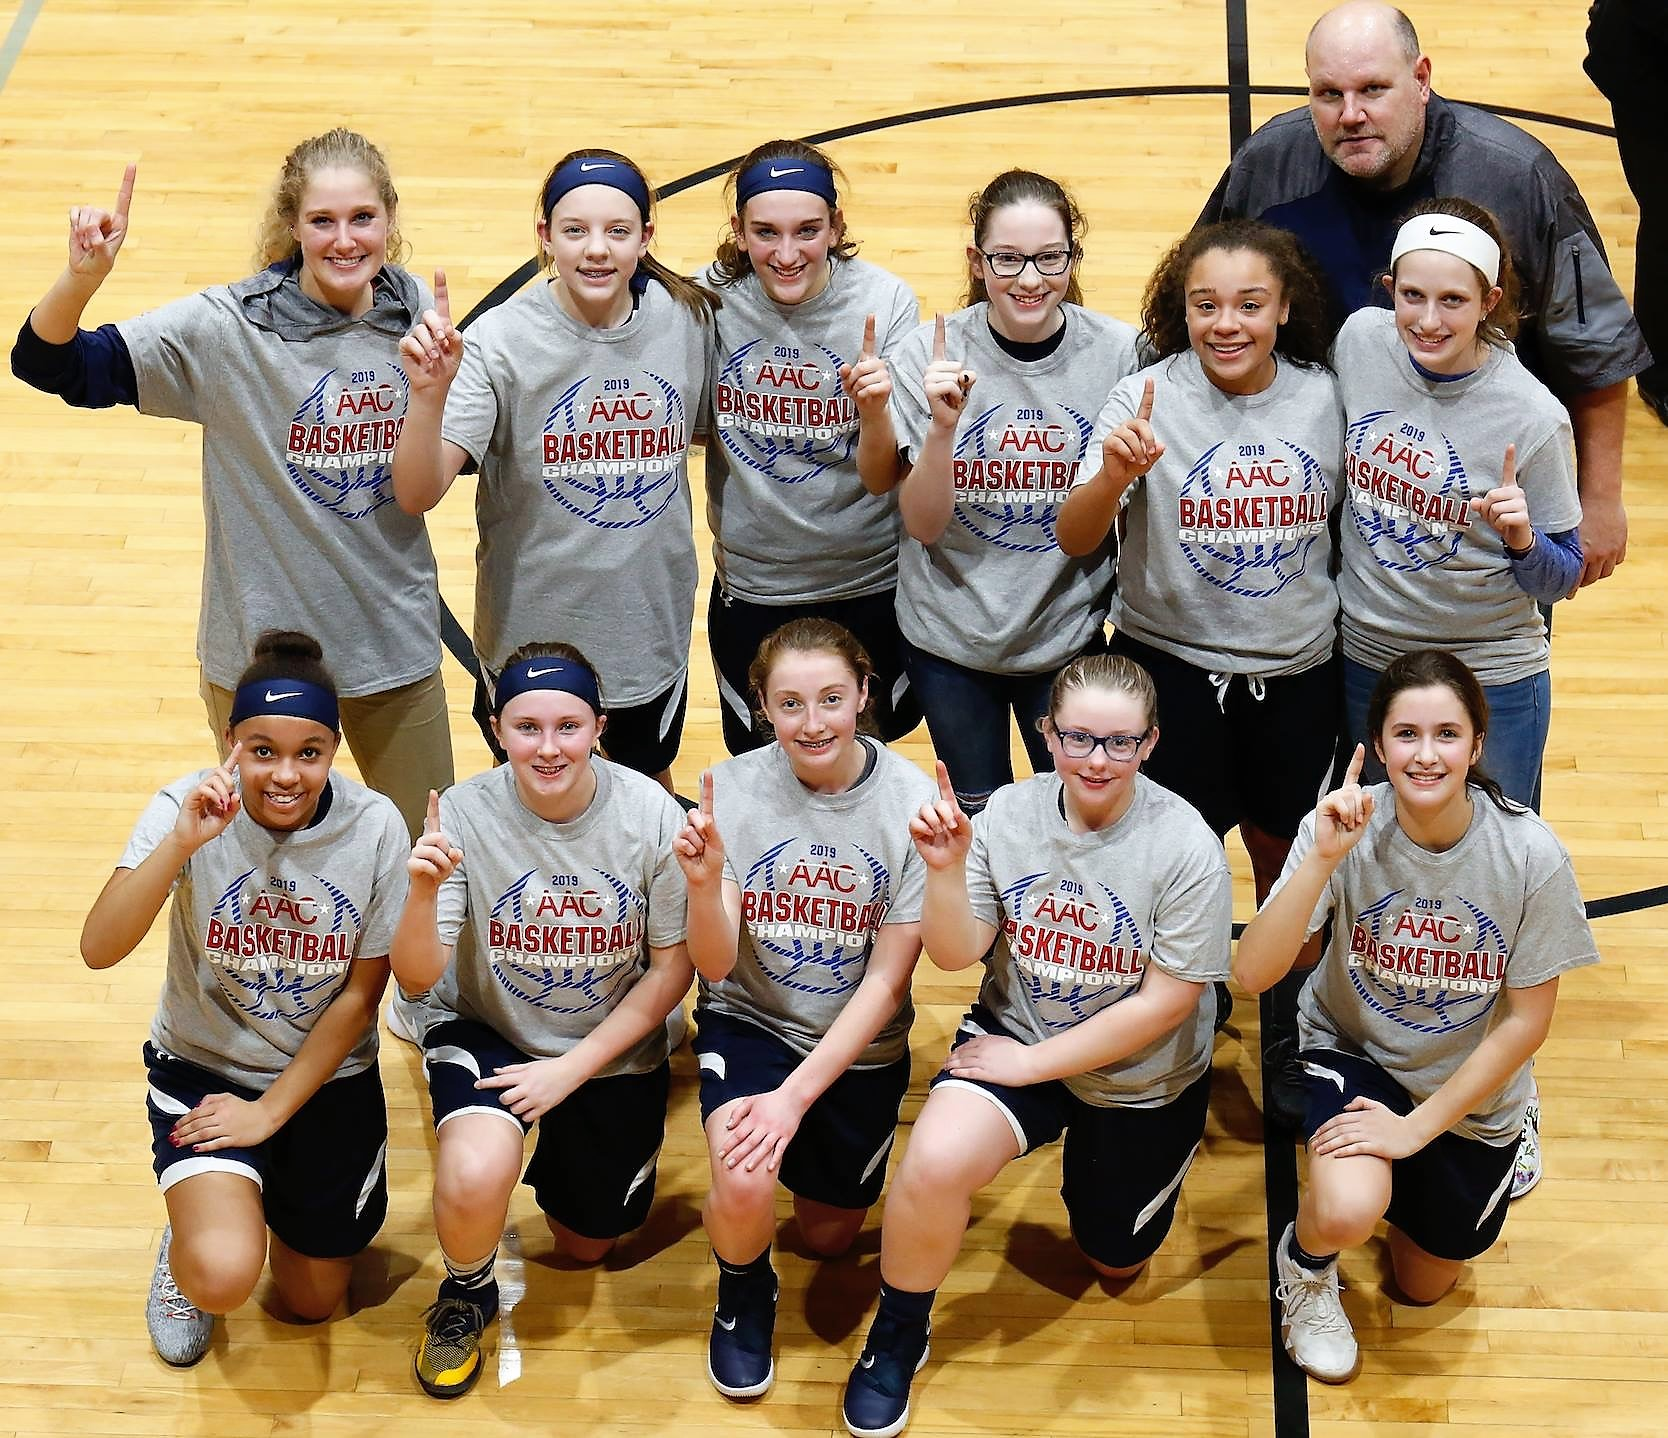 8th grade girls basketball team champions